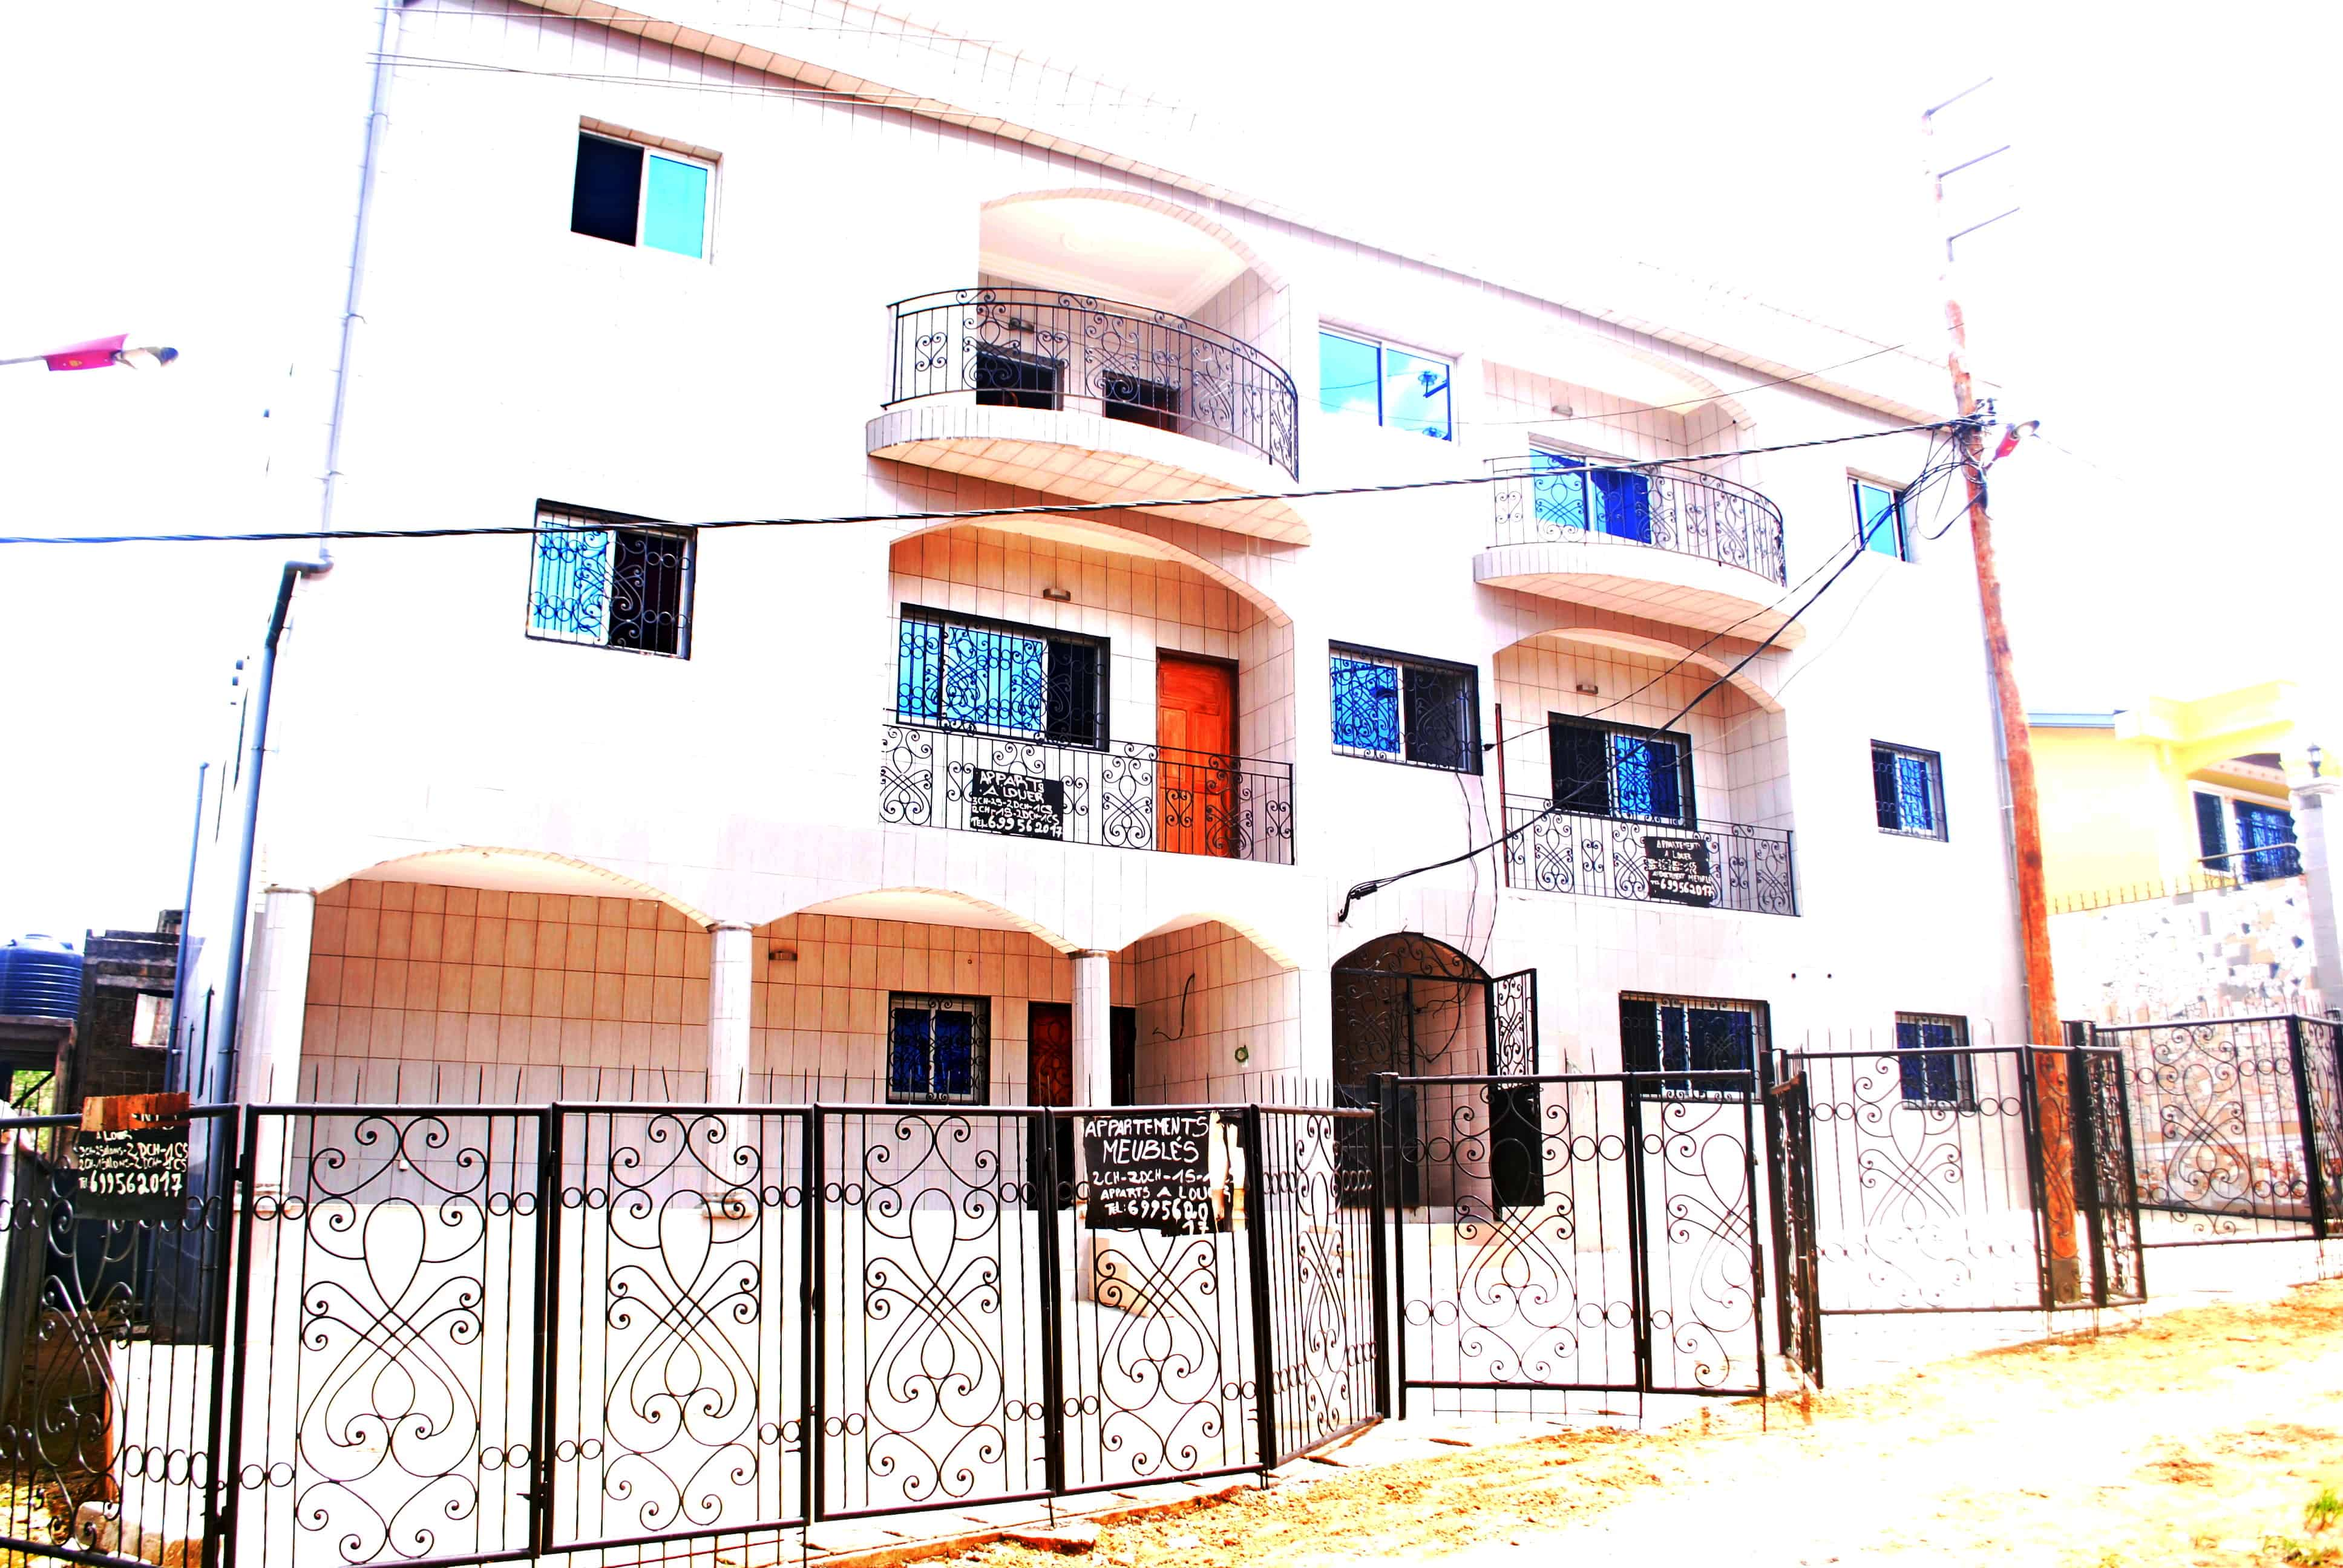 Apartment to rent - Douala, Logpom, LOGPOM FIN GOUDRON, LOGBESSOU, MAKEPE - 2 living room(s), 3 bedroom(s), 2 bathroom(s) - 150 000 FCFA / month